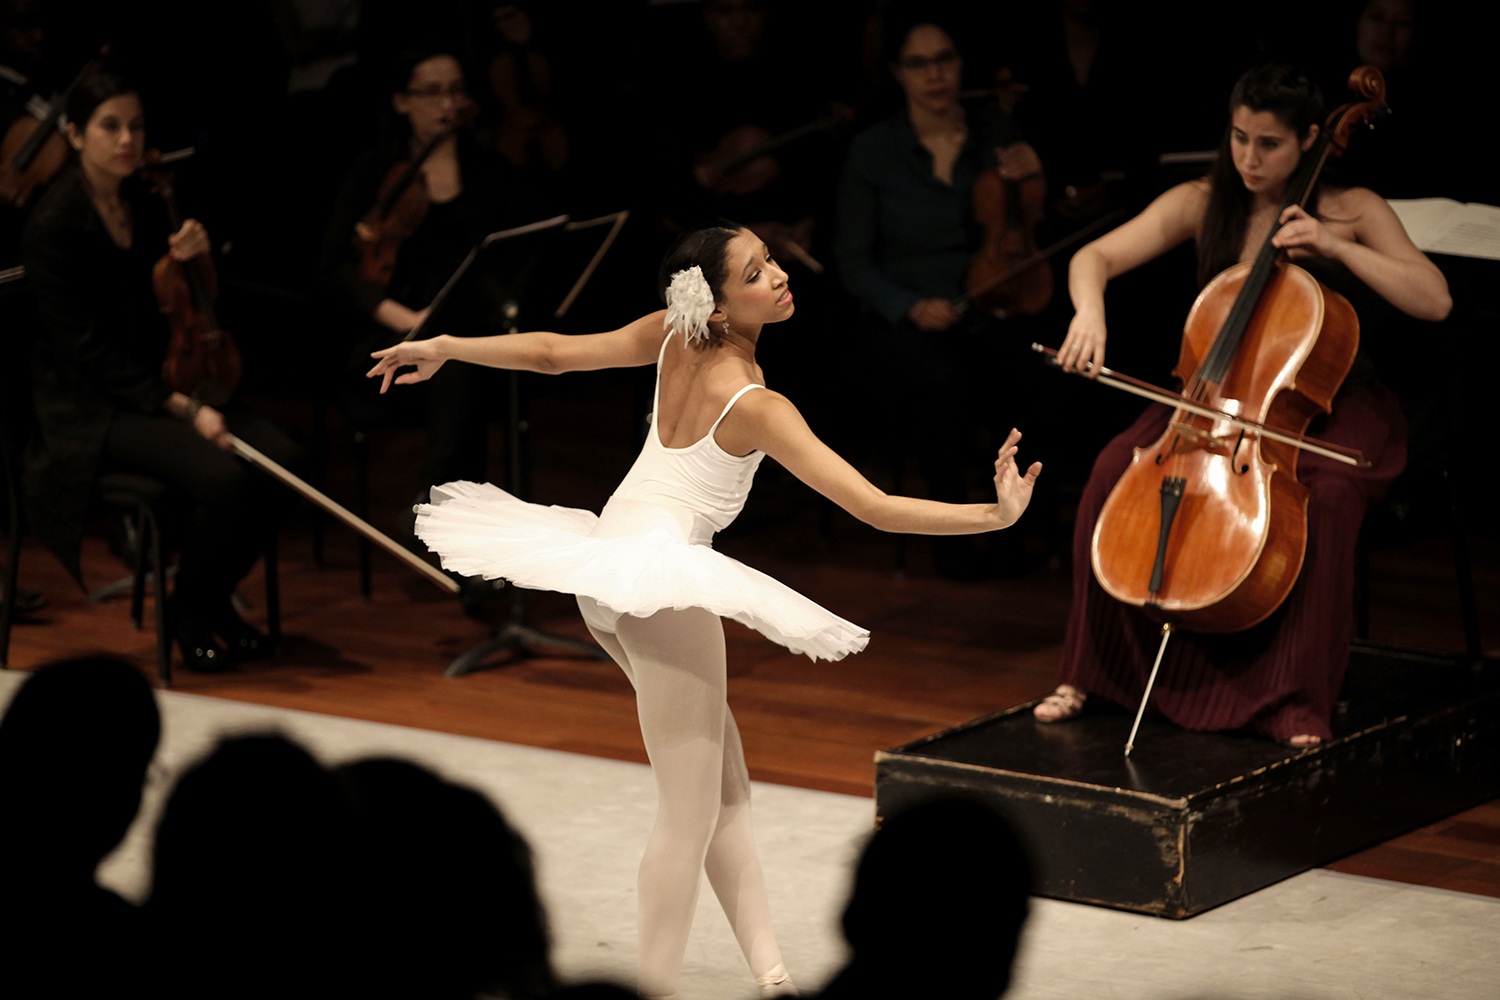 Erica Lall, left, dances while Christine Lamprea plays the cello before the Junior Division Honors Concert on Friday, Feb. 21, 2014 at Orchestra Hall in Detroit. Tim Galloway for Al Jazeera America.